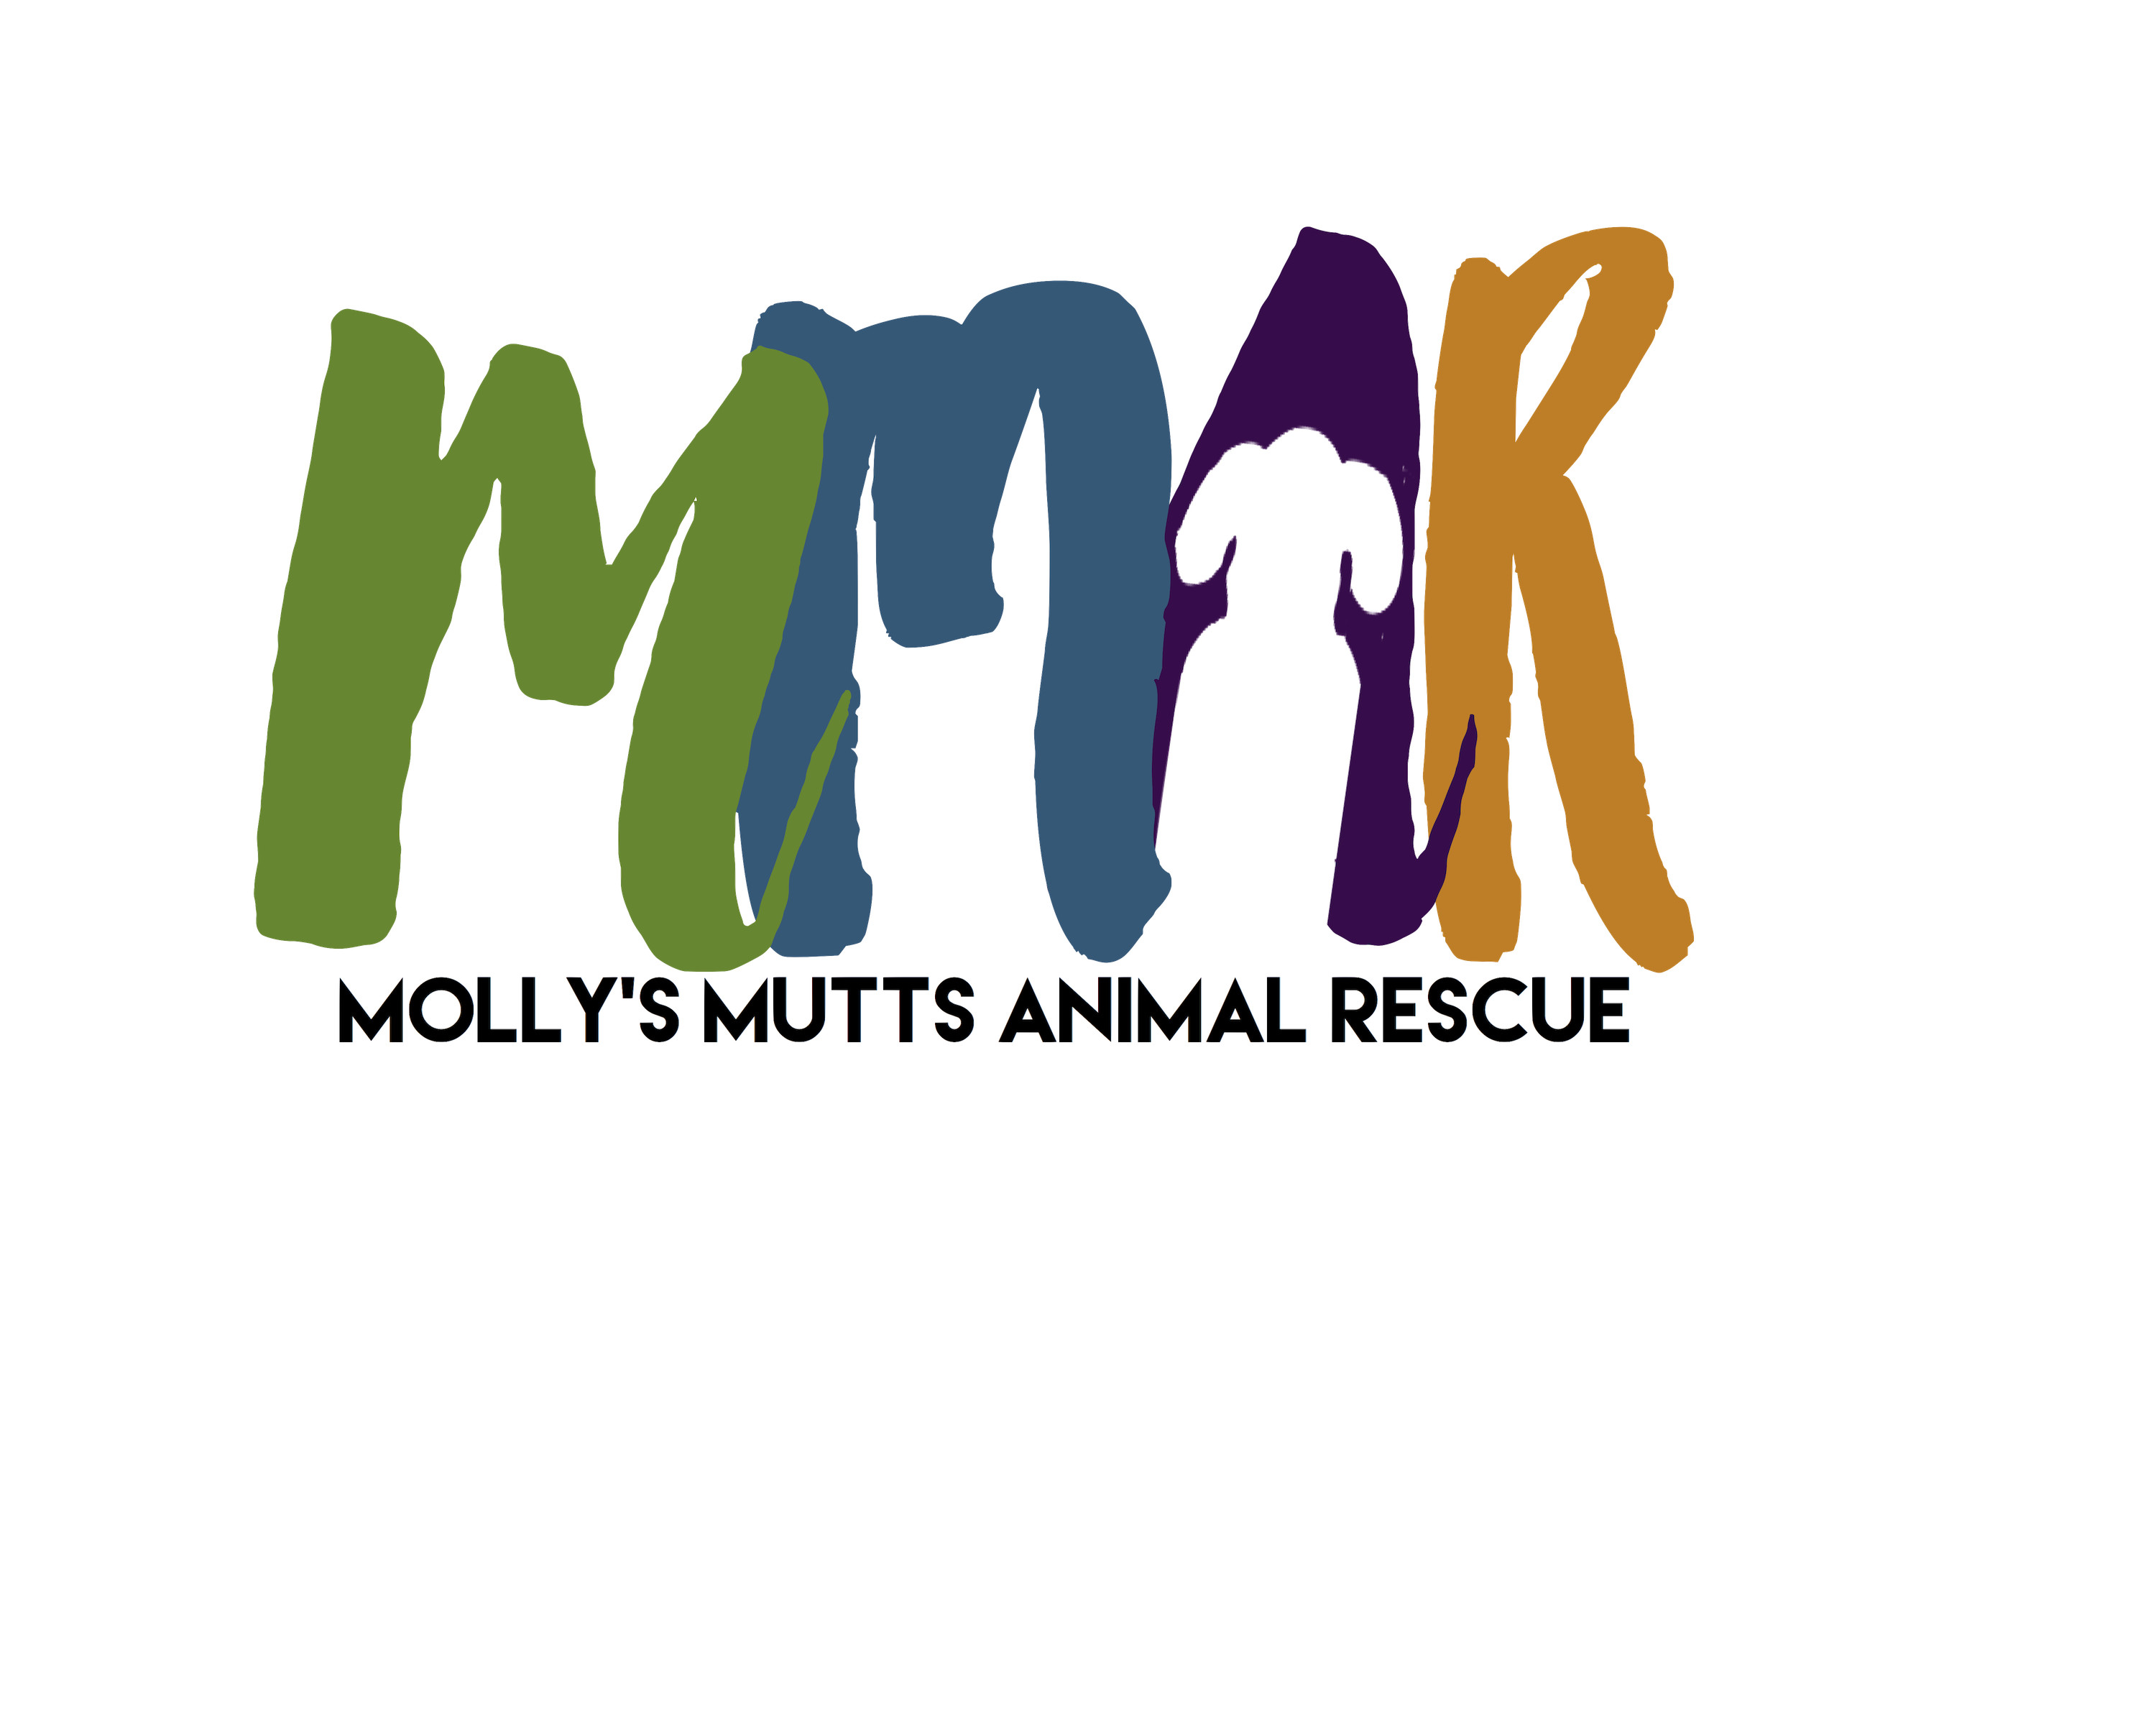 Molly's Mutts Animal Rescue